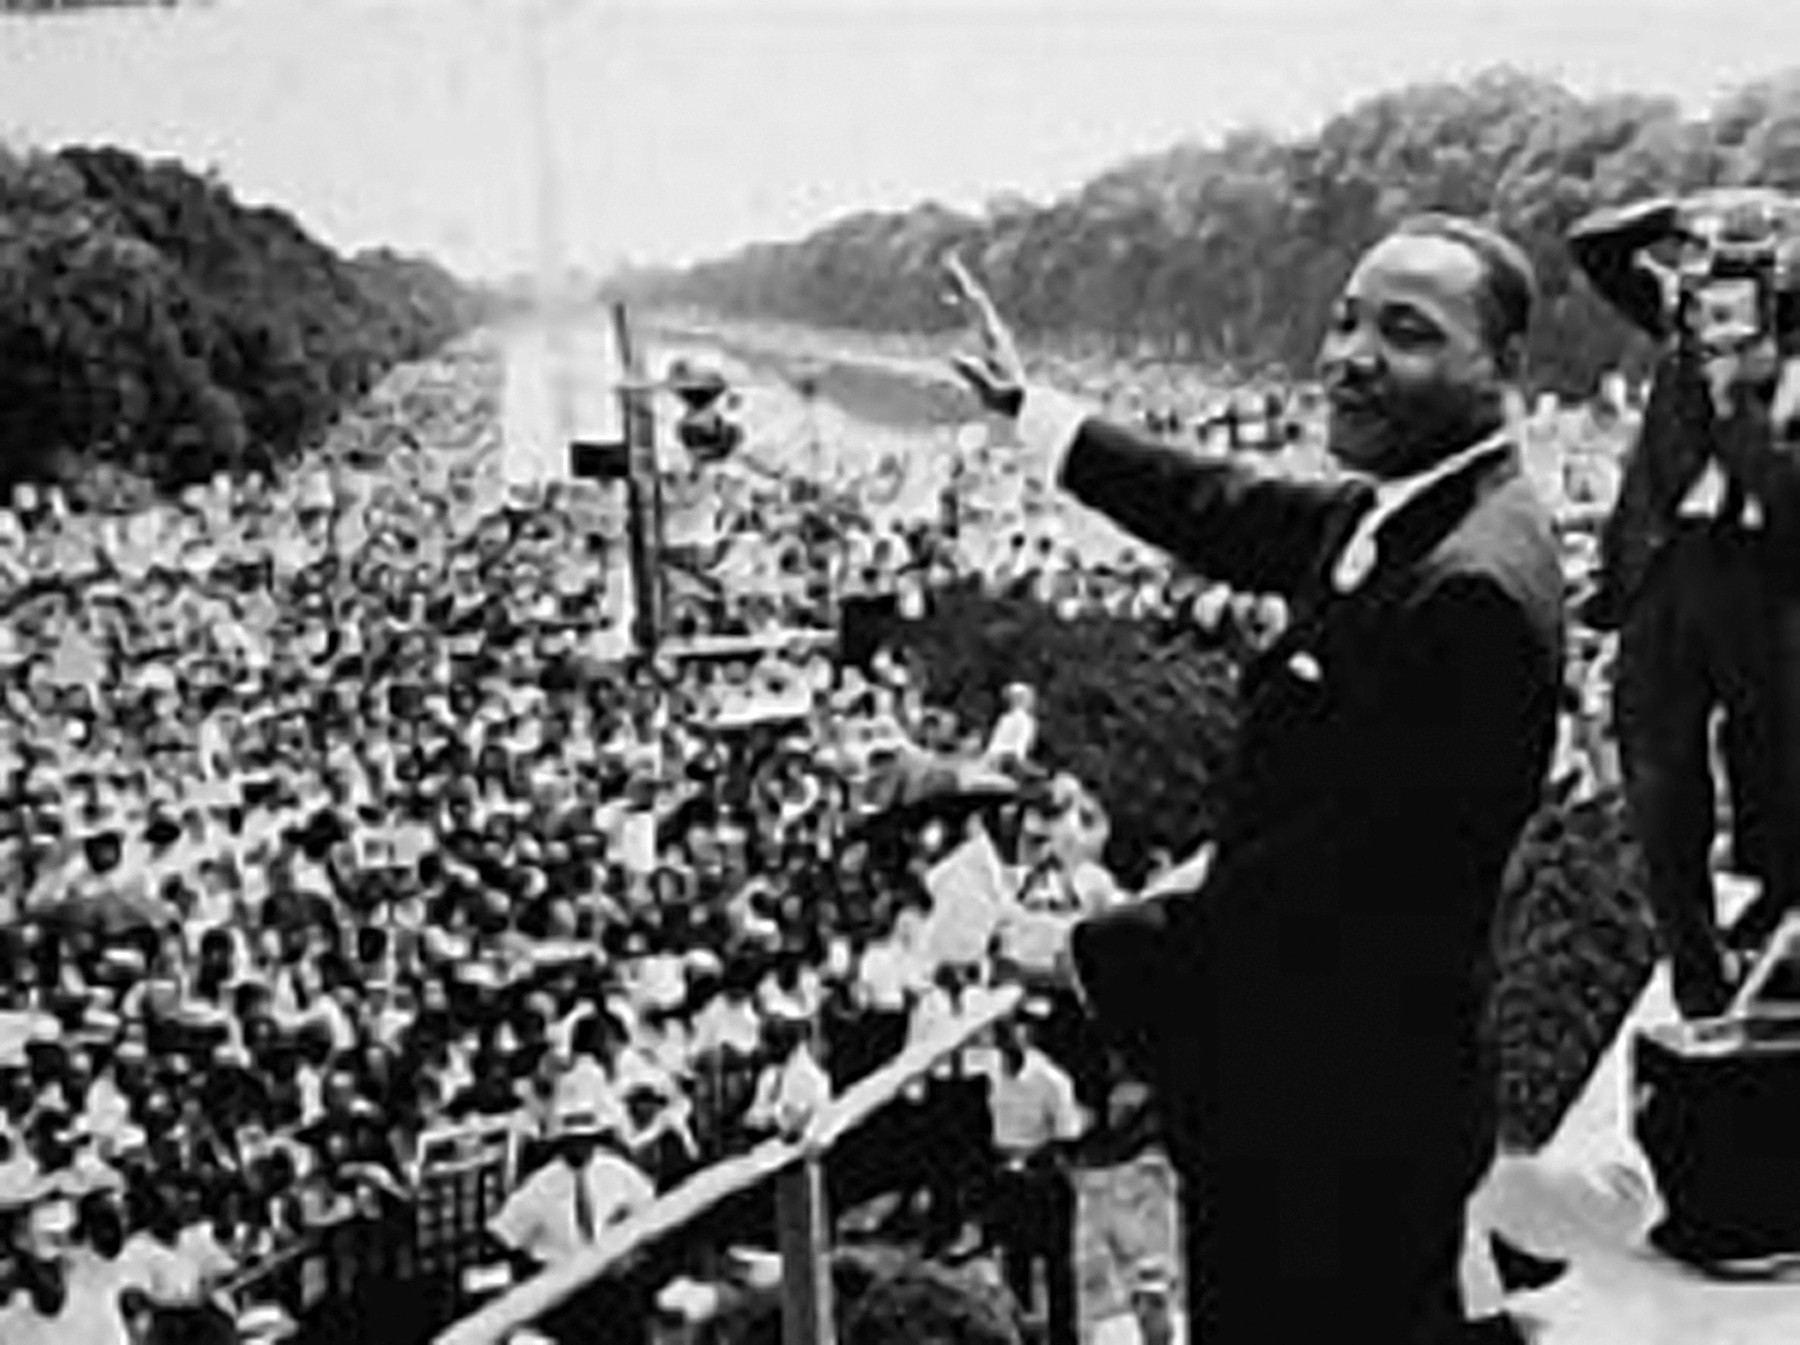 Remembering the legacy of MLK